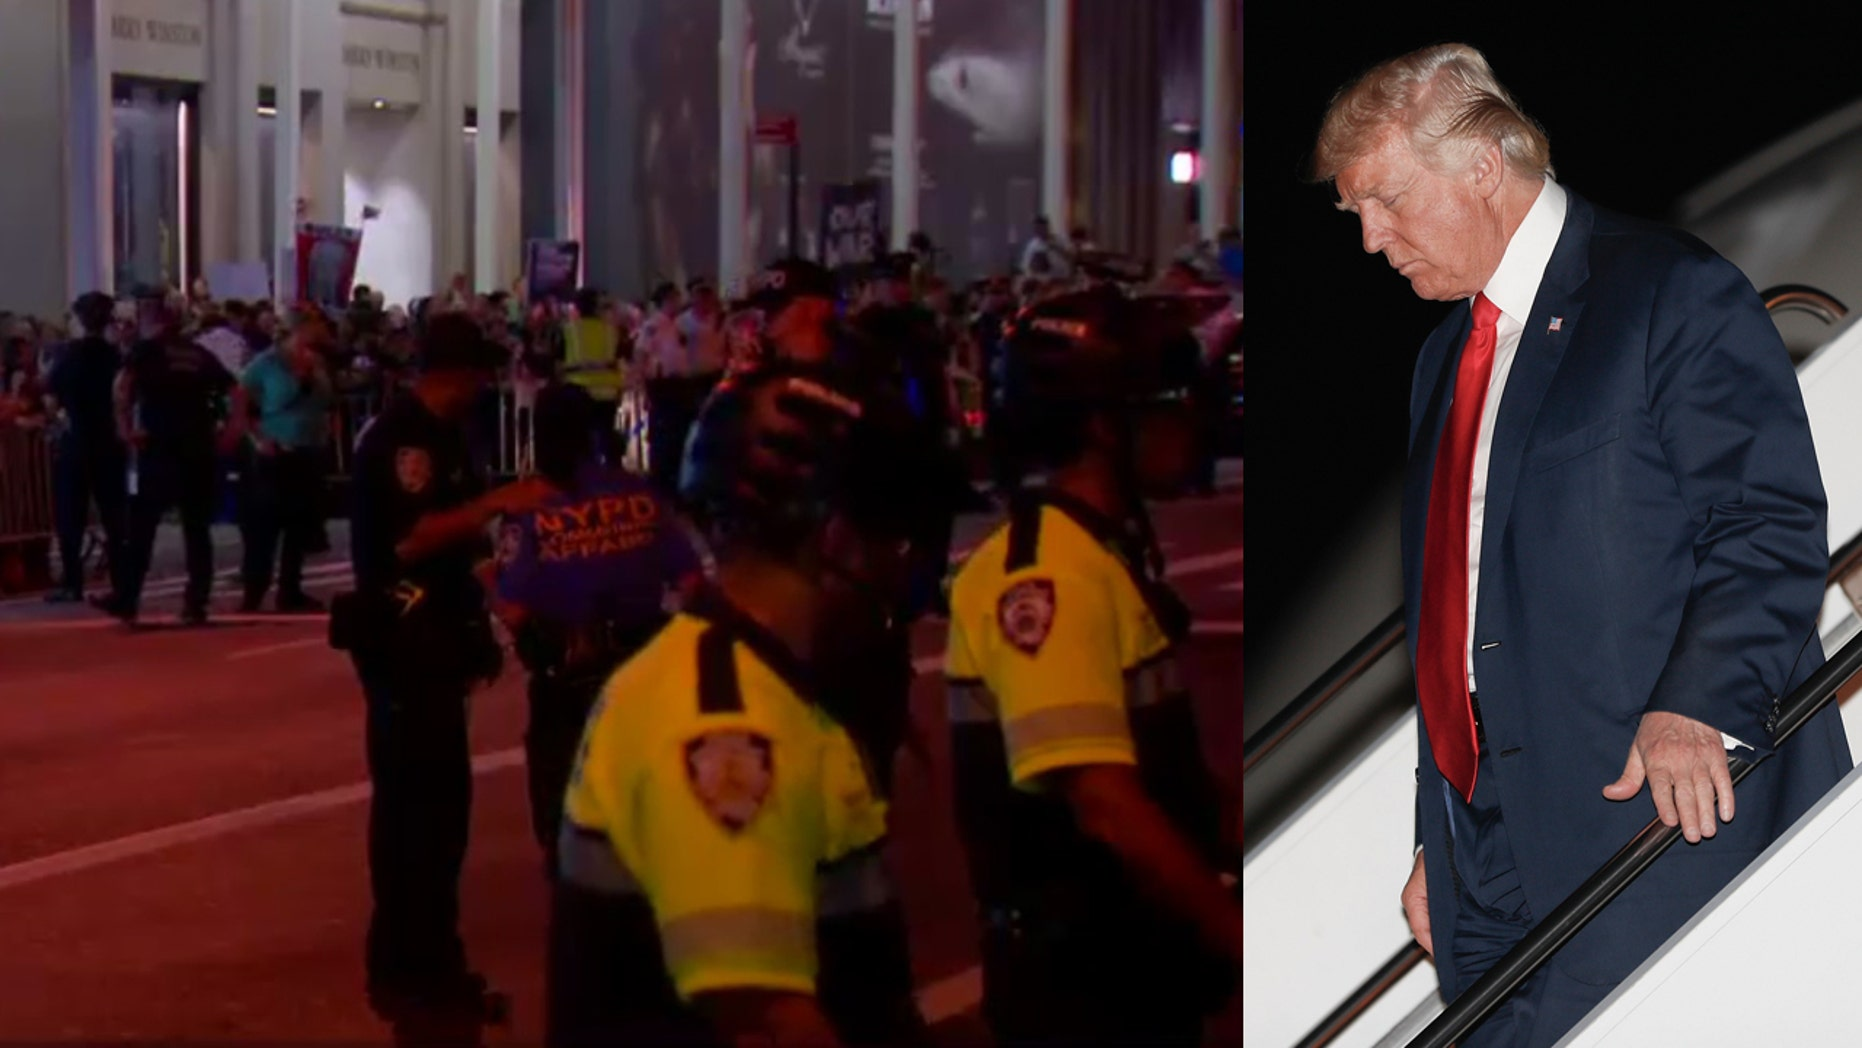 President trump arrived at Trump Tower in Manhattan on Monday night.